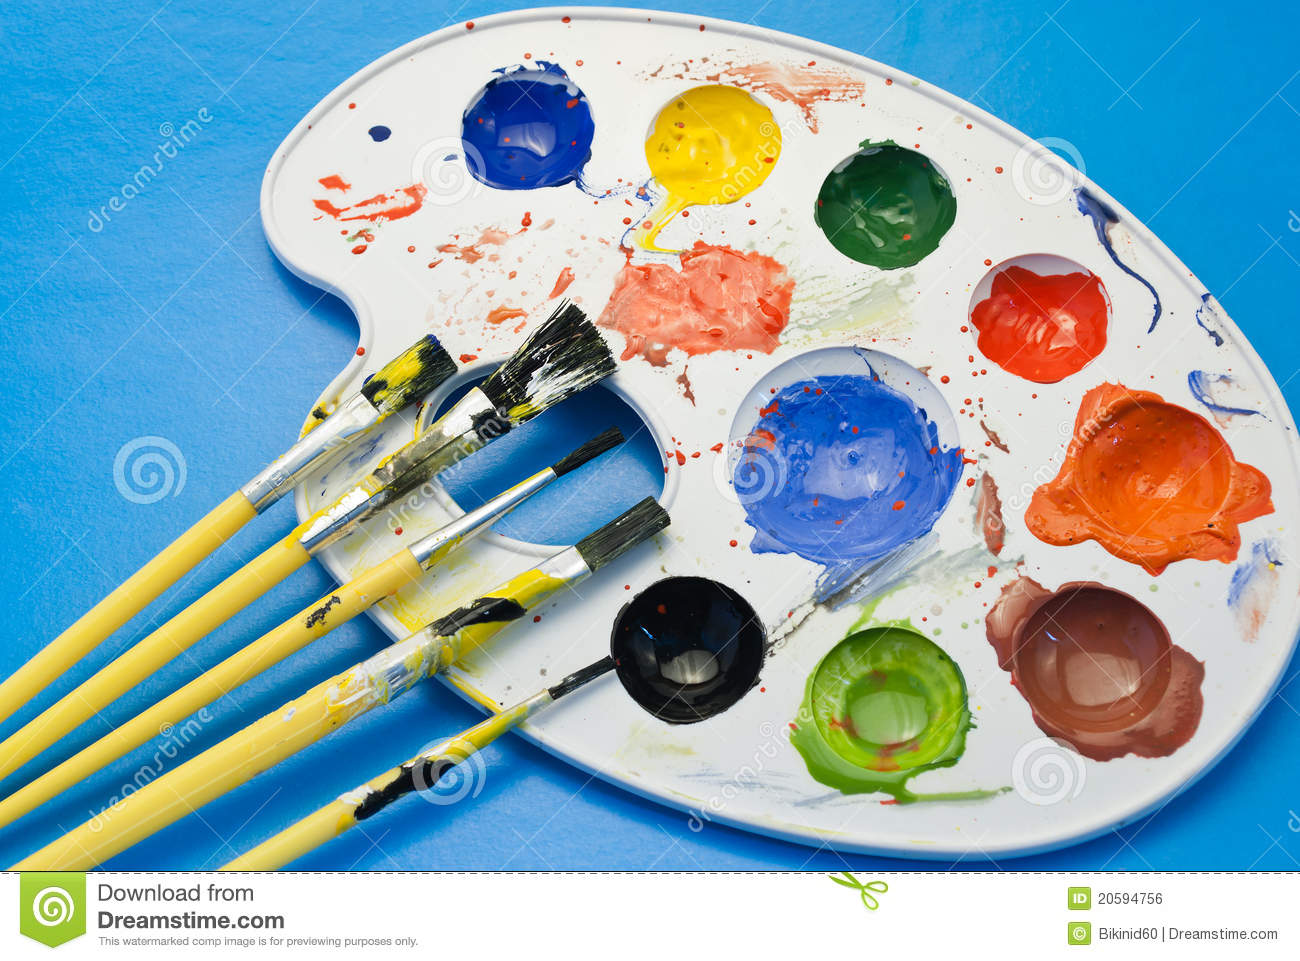 painting kit royalty free stock image image 20594756 spray paint free clipart spray paint free clipart